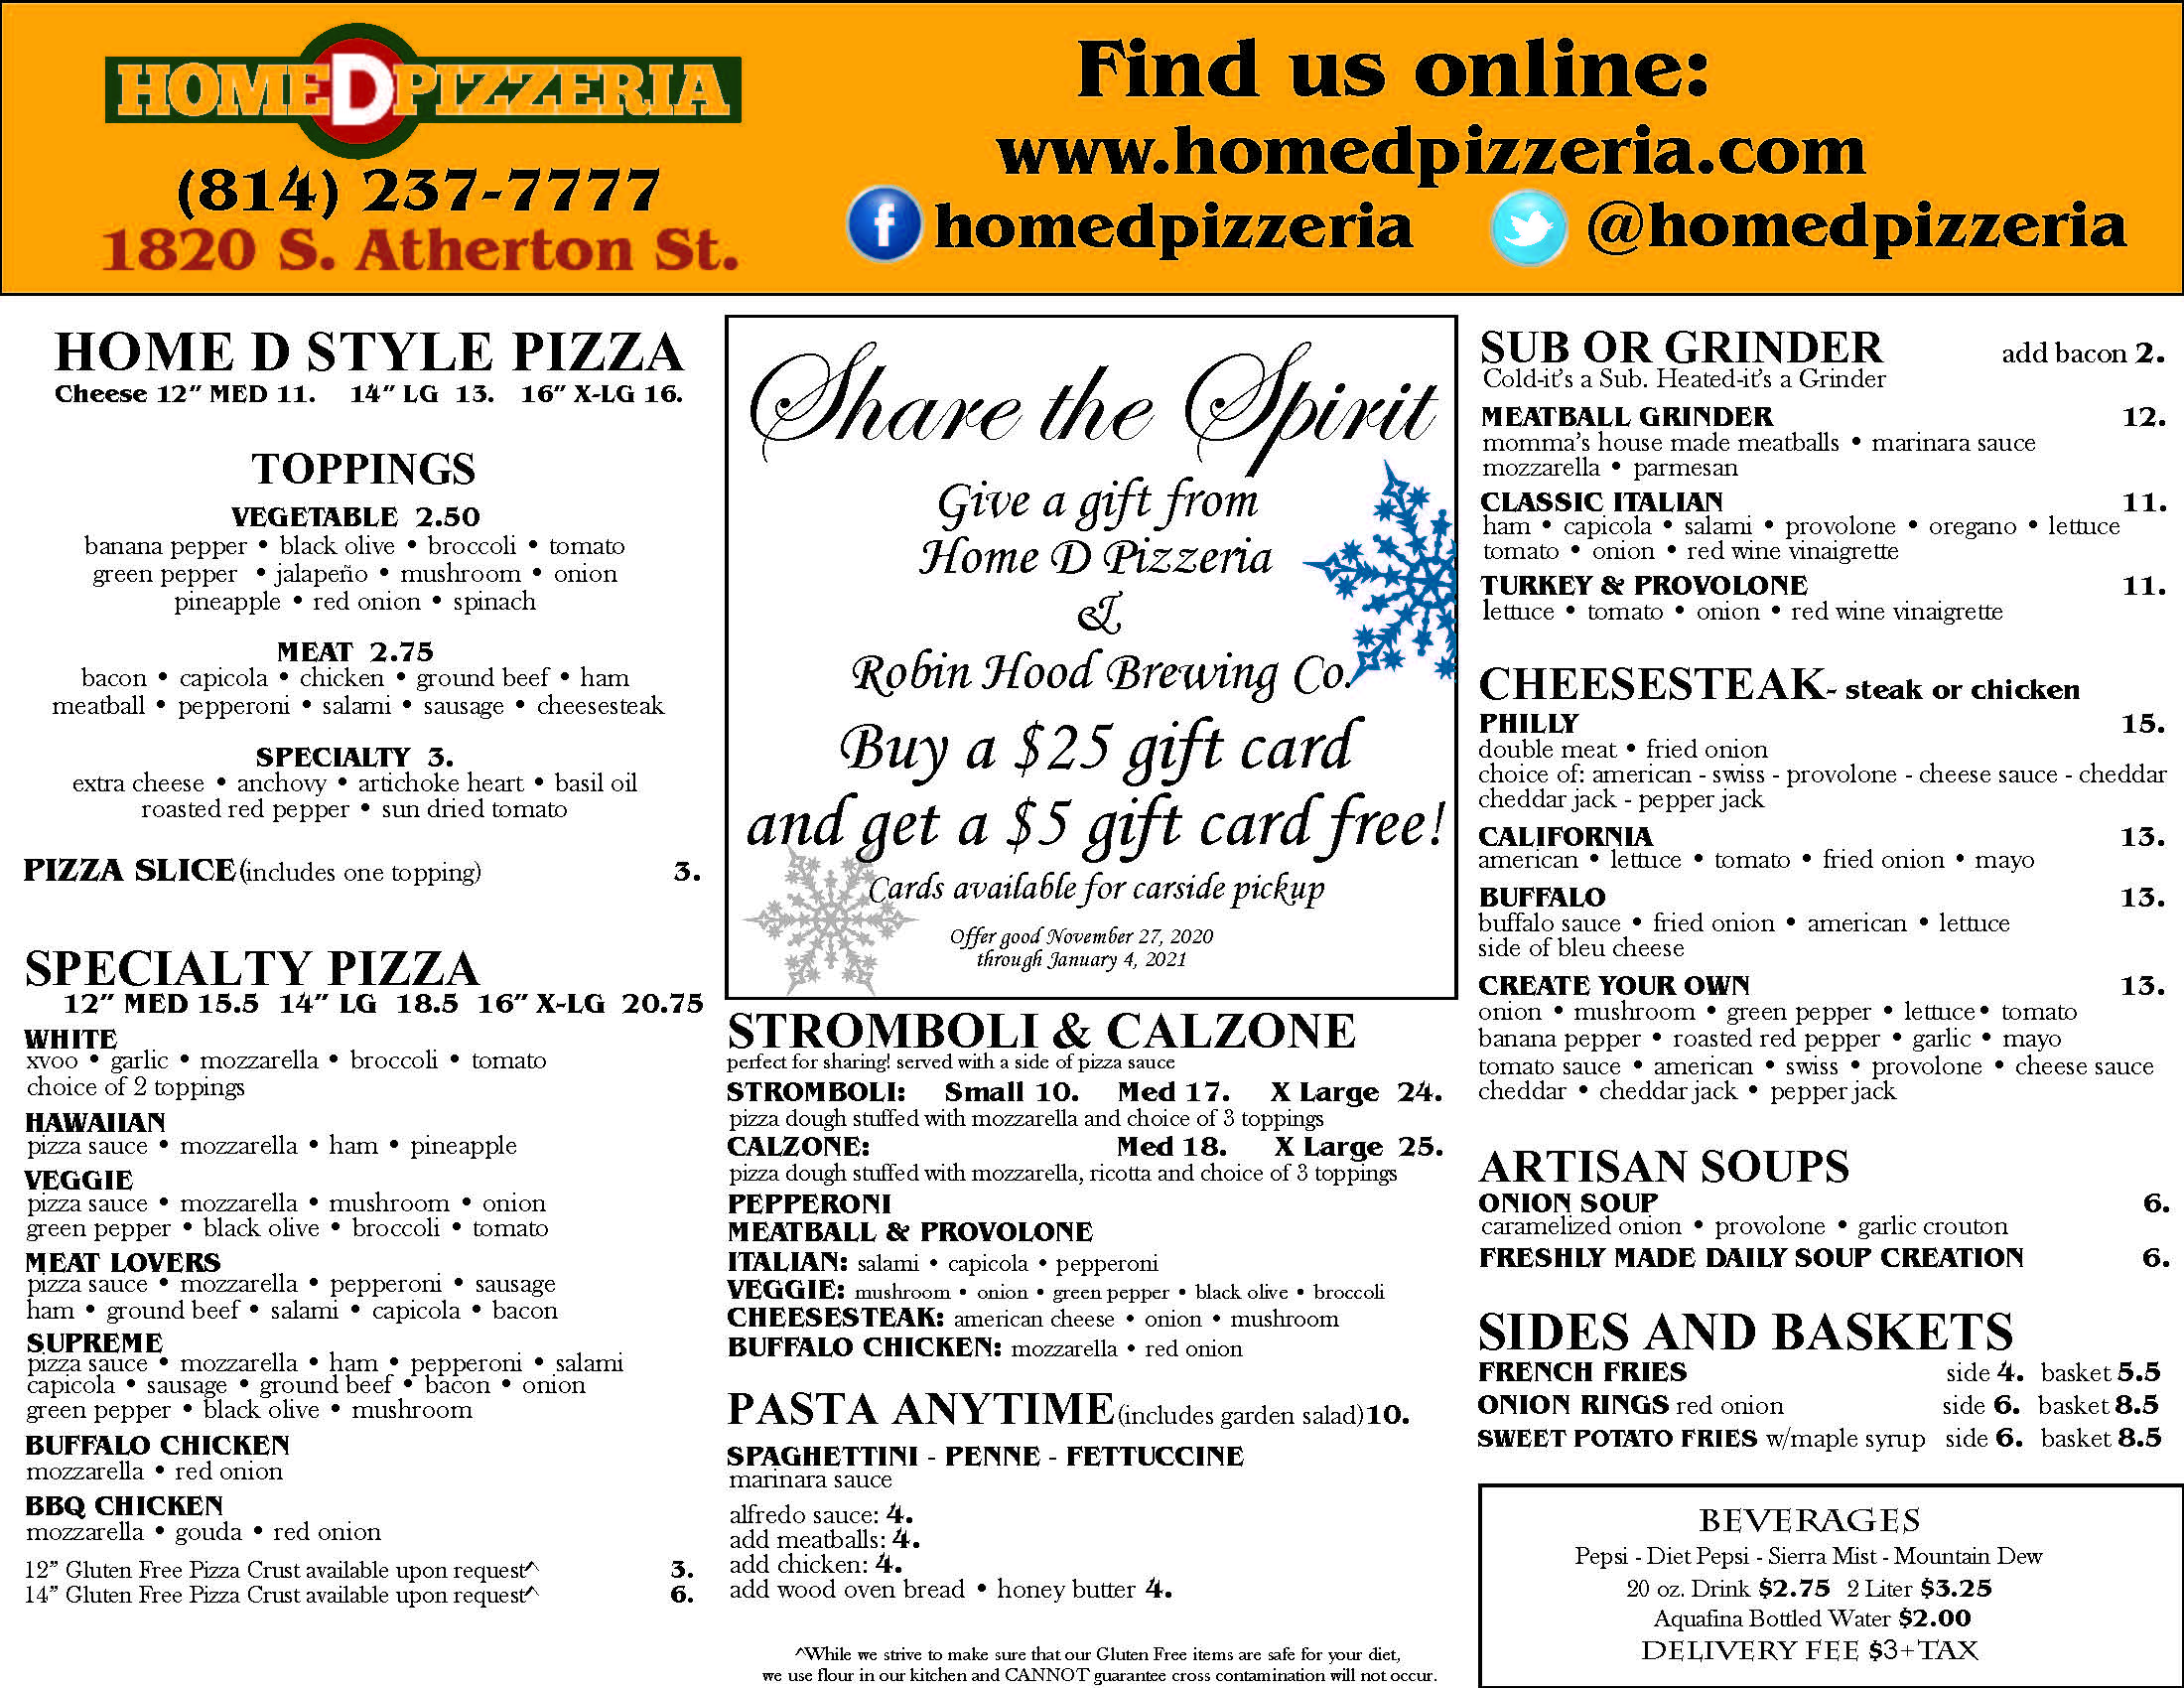 Takeout & Delivery Menu - 2nd Page